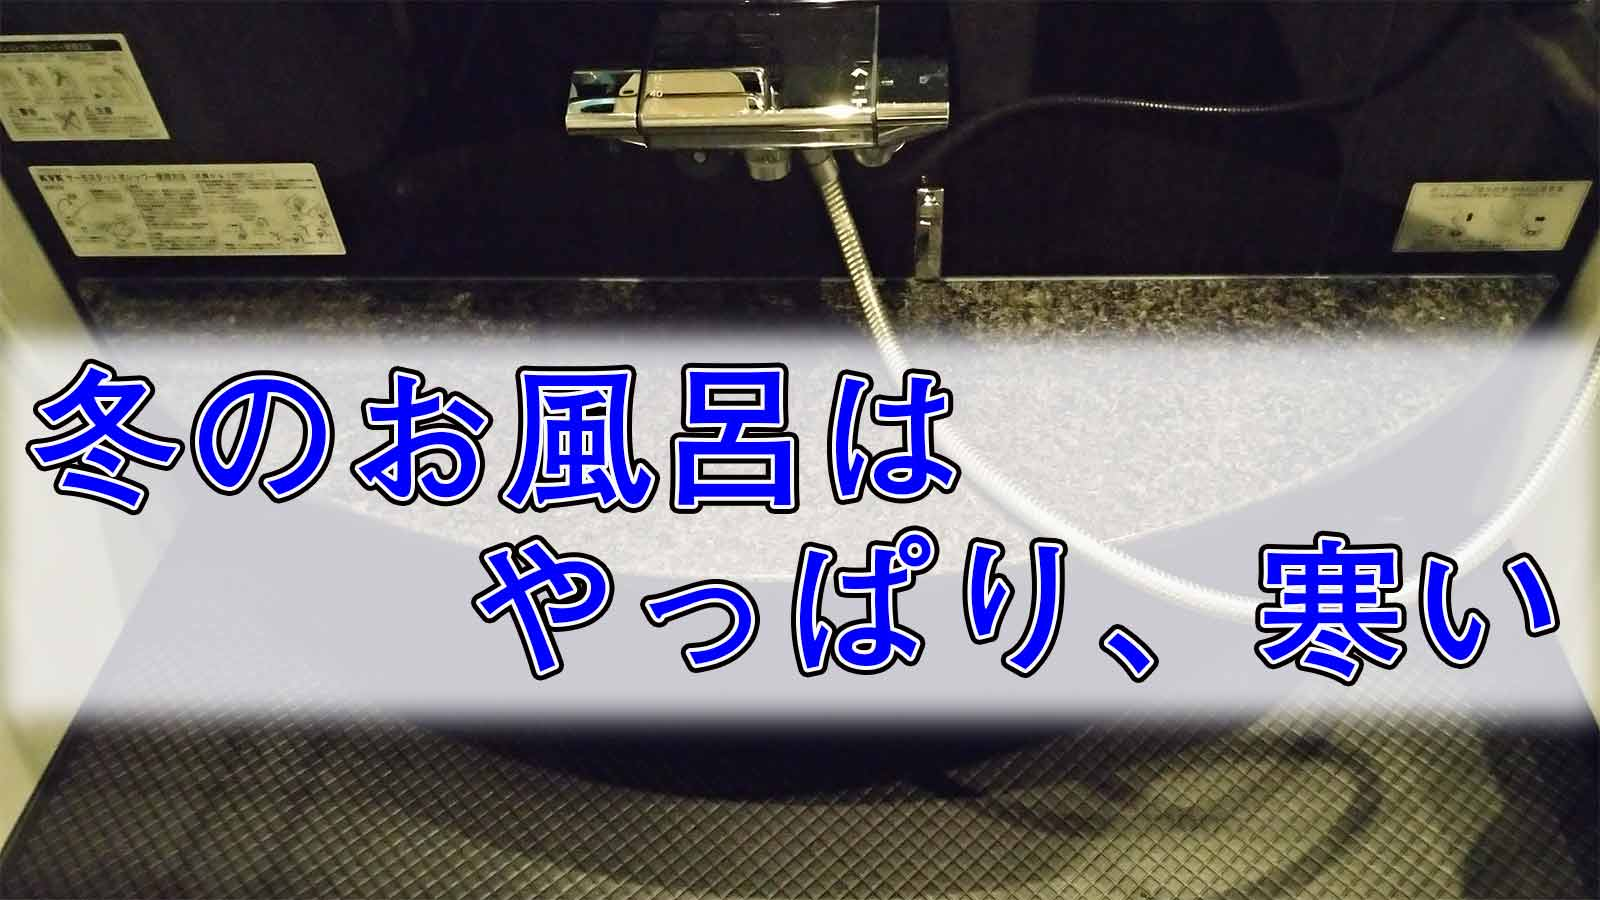 title for smart-bath. It is cold in winter, even using smart bath.